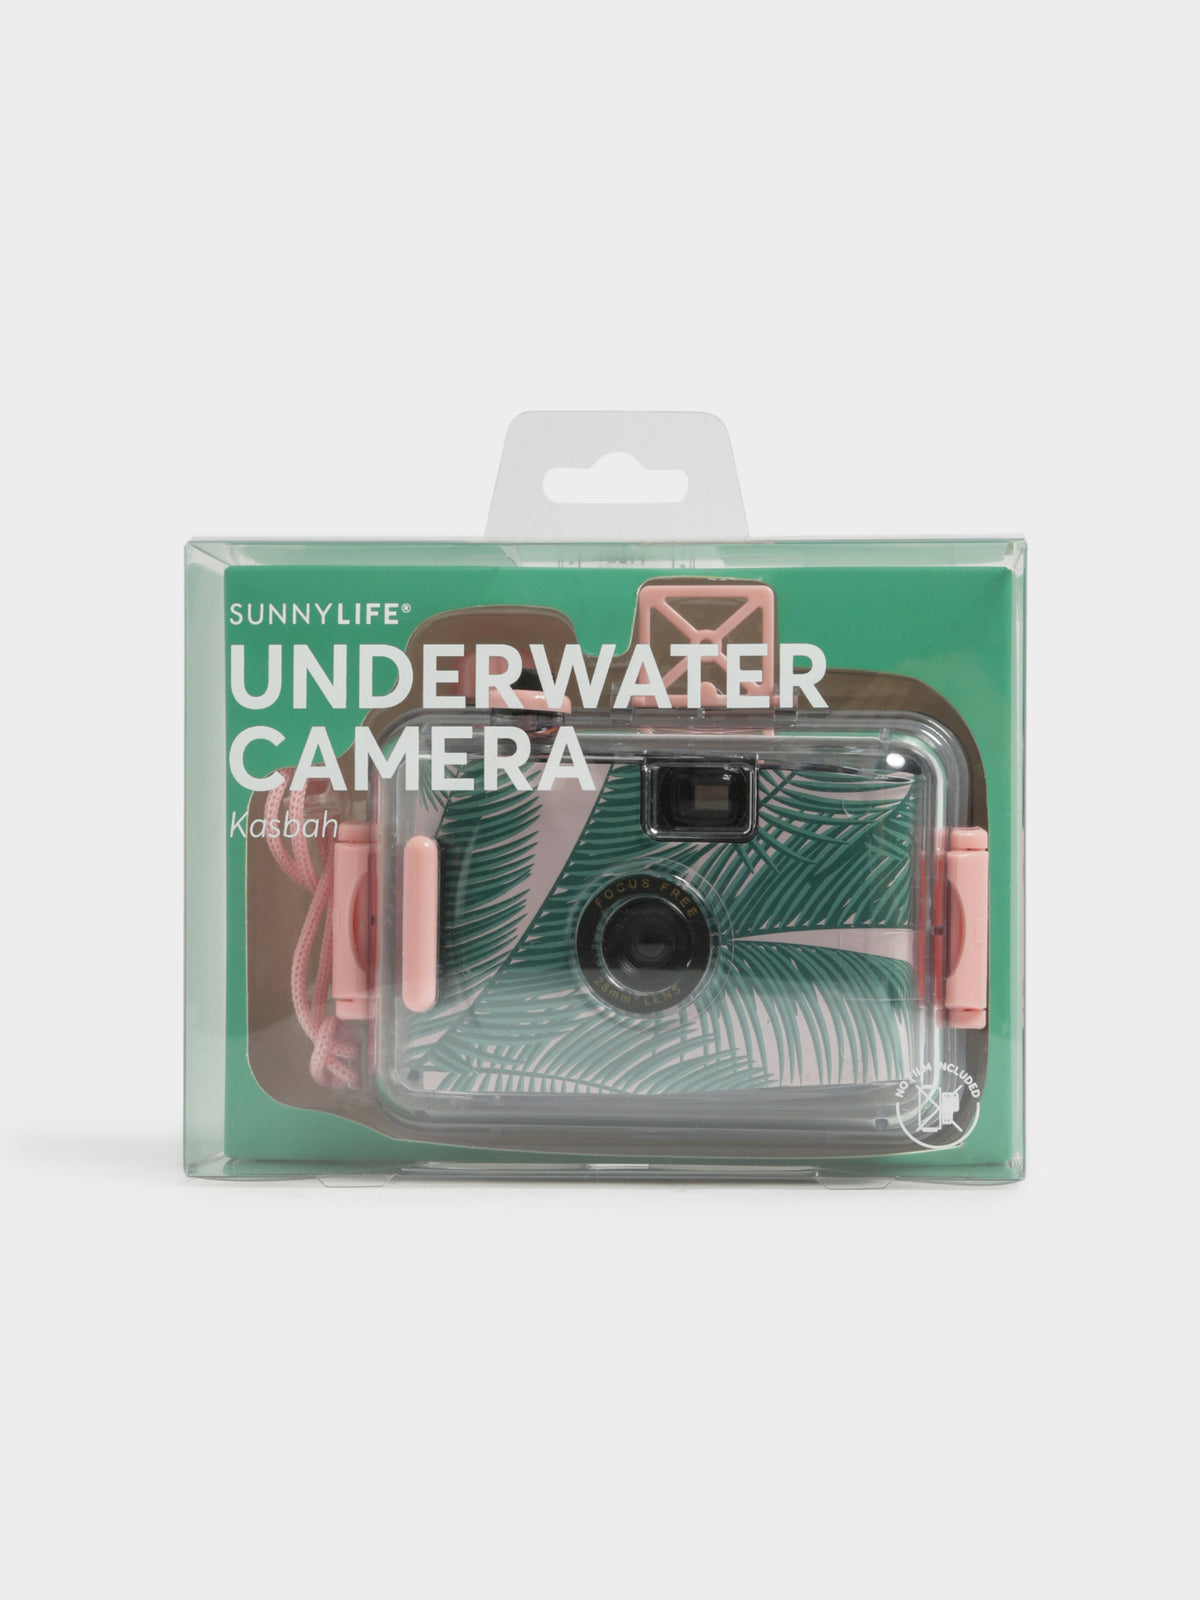 Underwater Camera in Kasbah